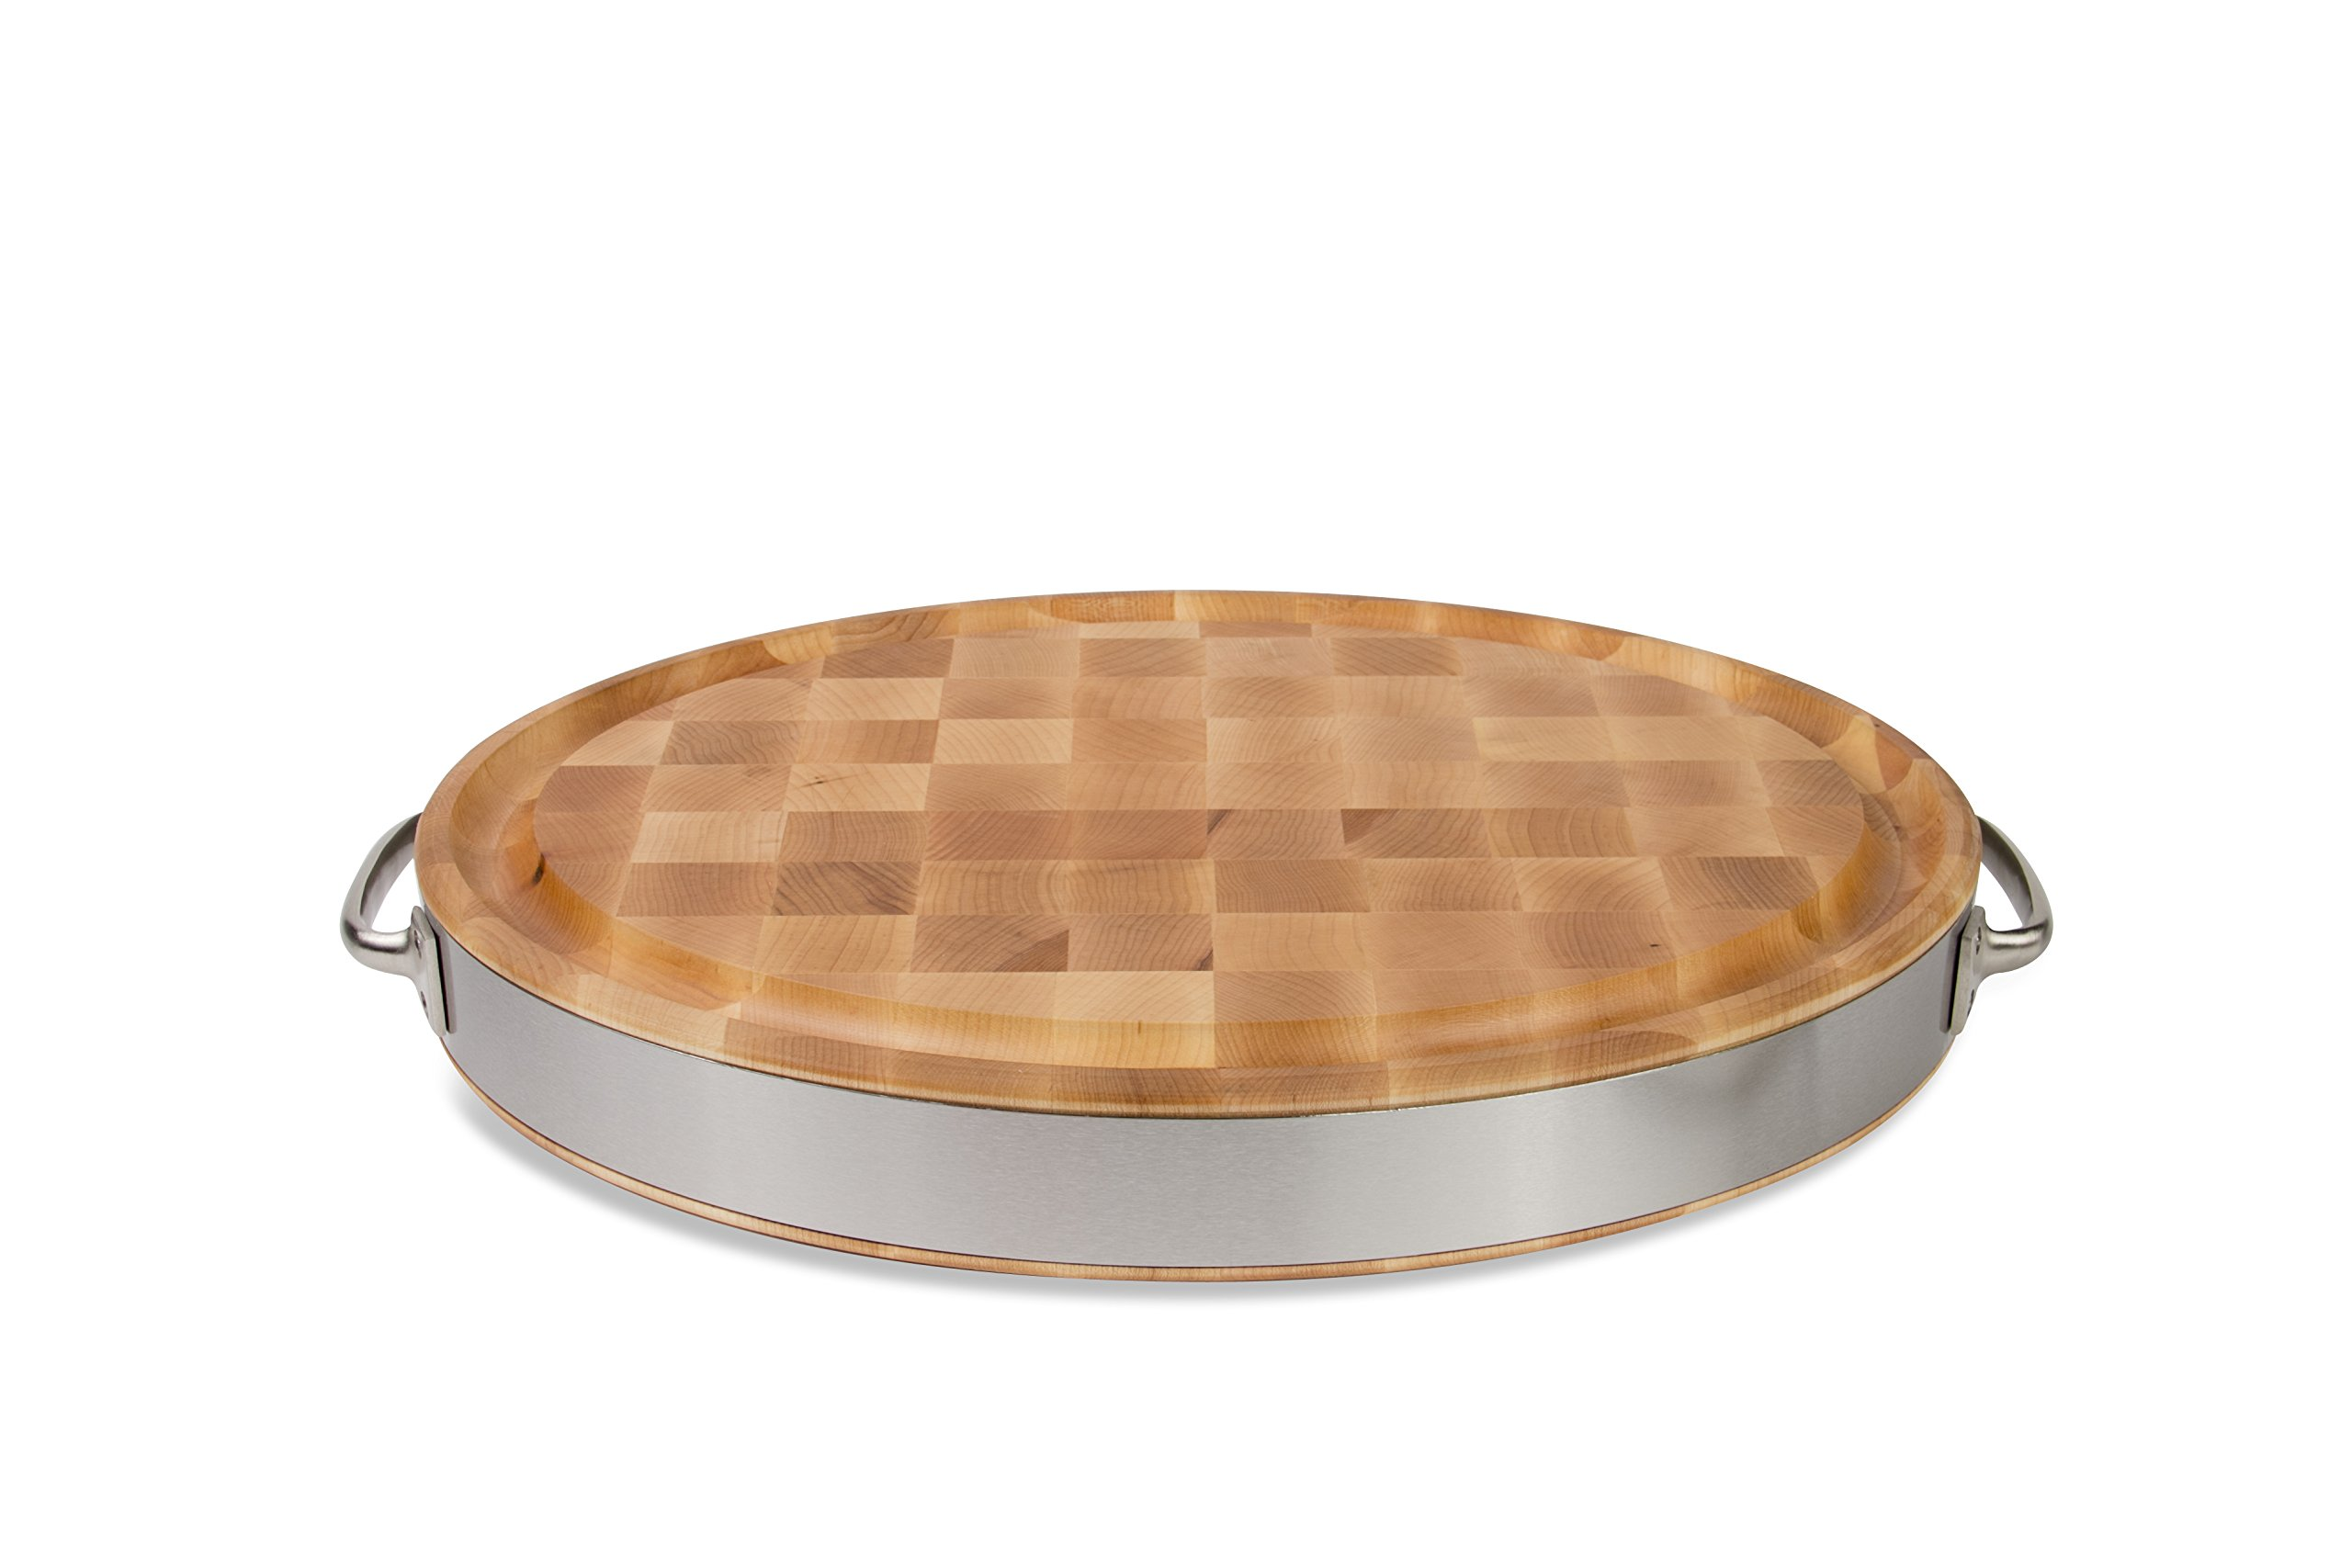 John Boos Maple Wood End Grain Reversible Oval Cutting Board with Juice Groove, Stainless Steel Band and Handles, 20 Inches x 15 Inches x  2.5 Inches